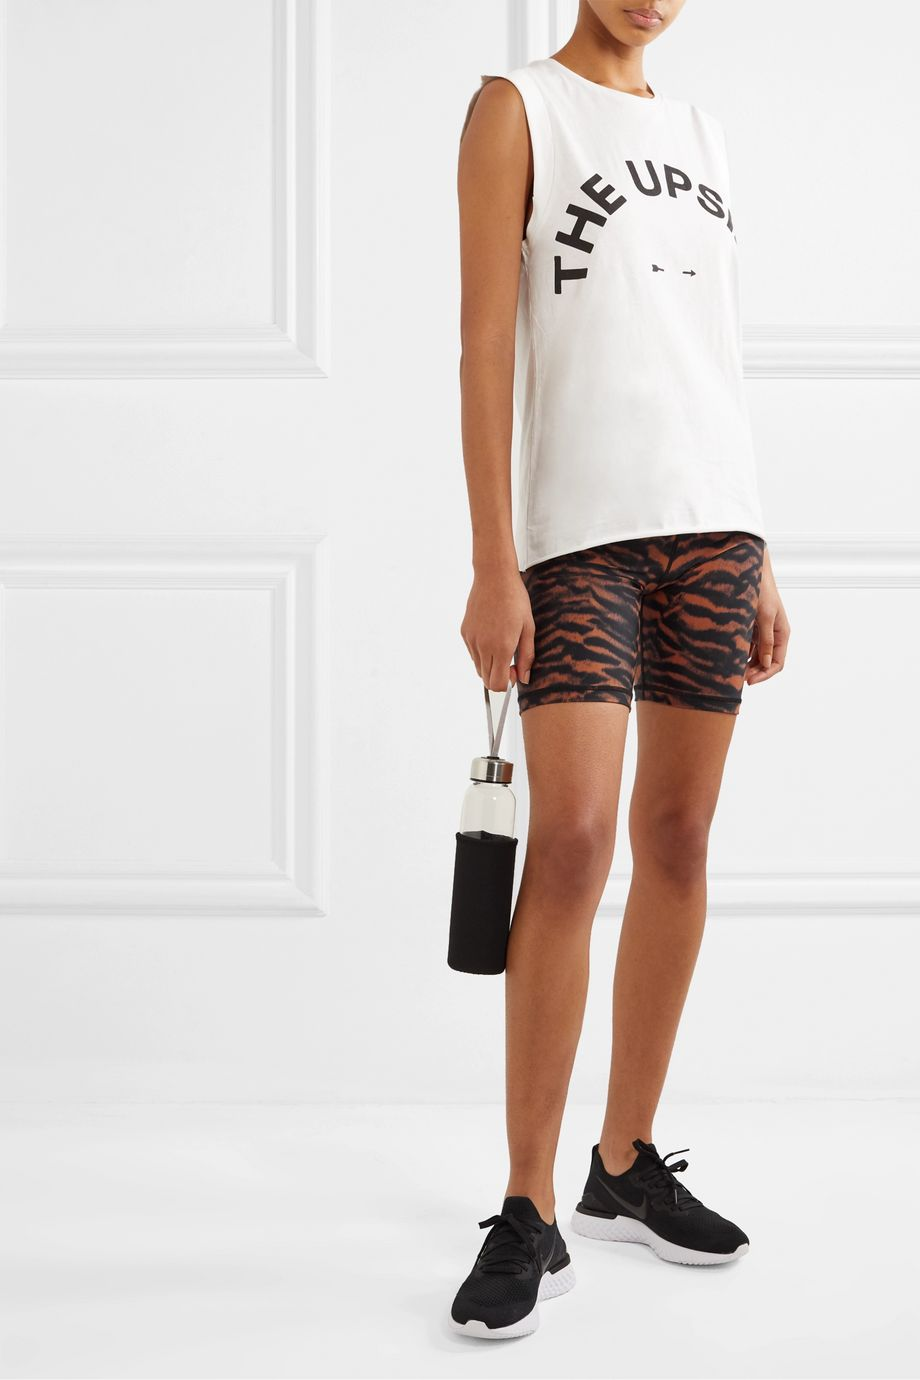 The Upside Tiger-print stretch shorts